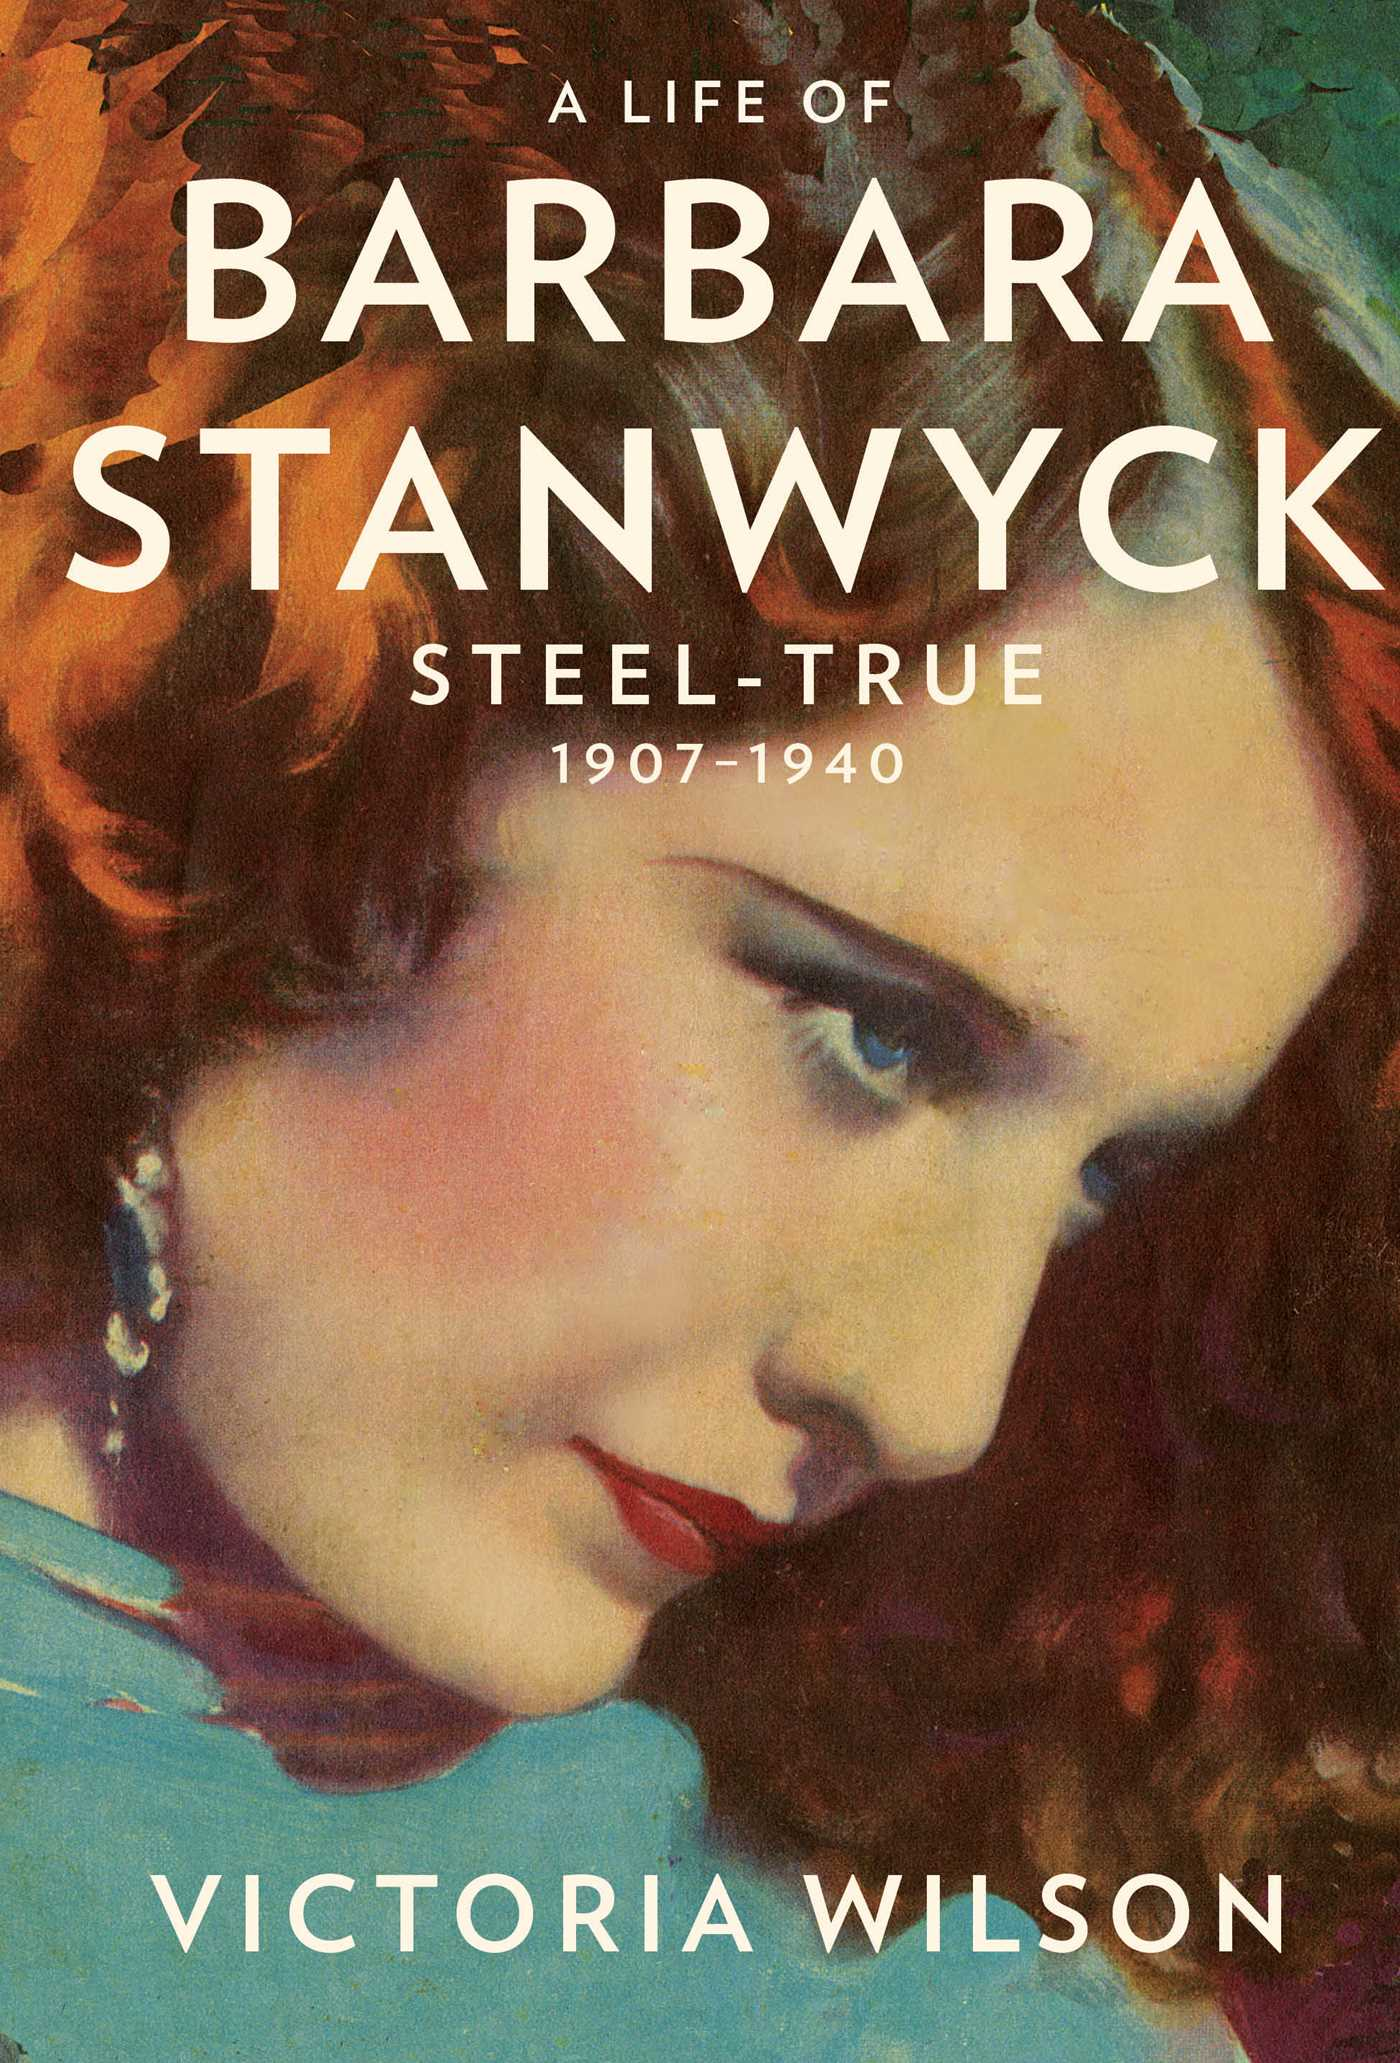 Life-of-barbara-stanwyck-9780684831688_hr